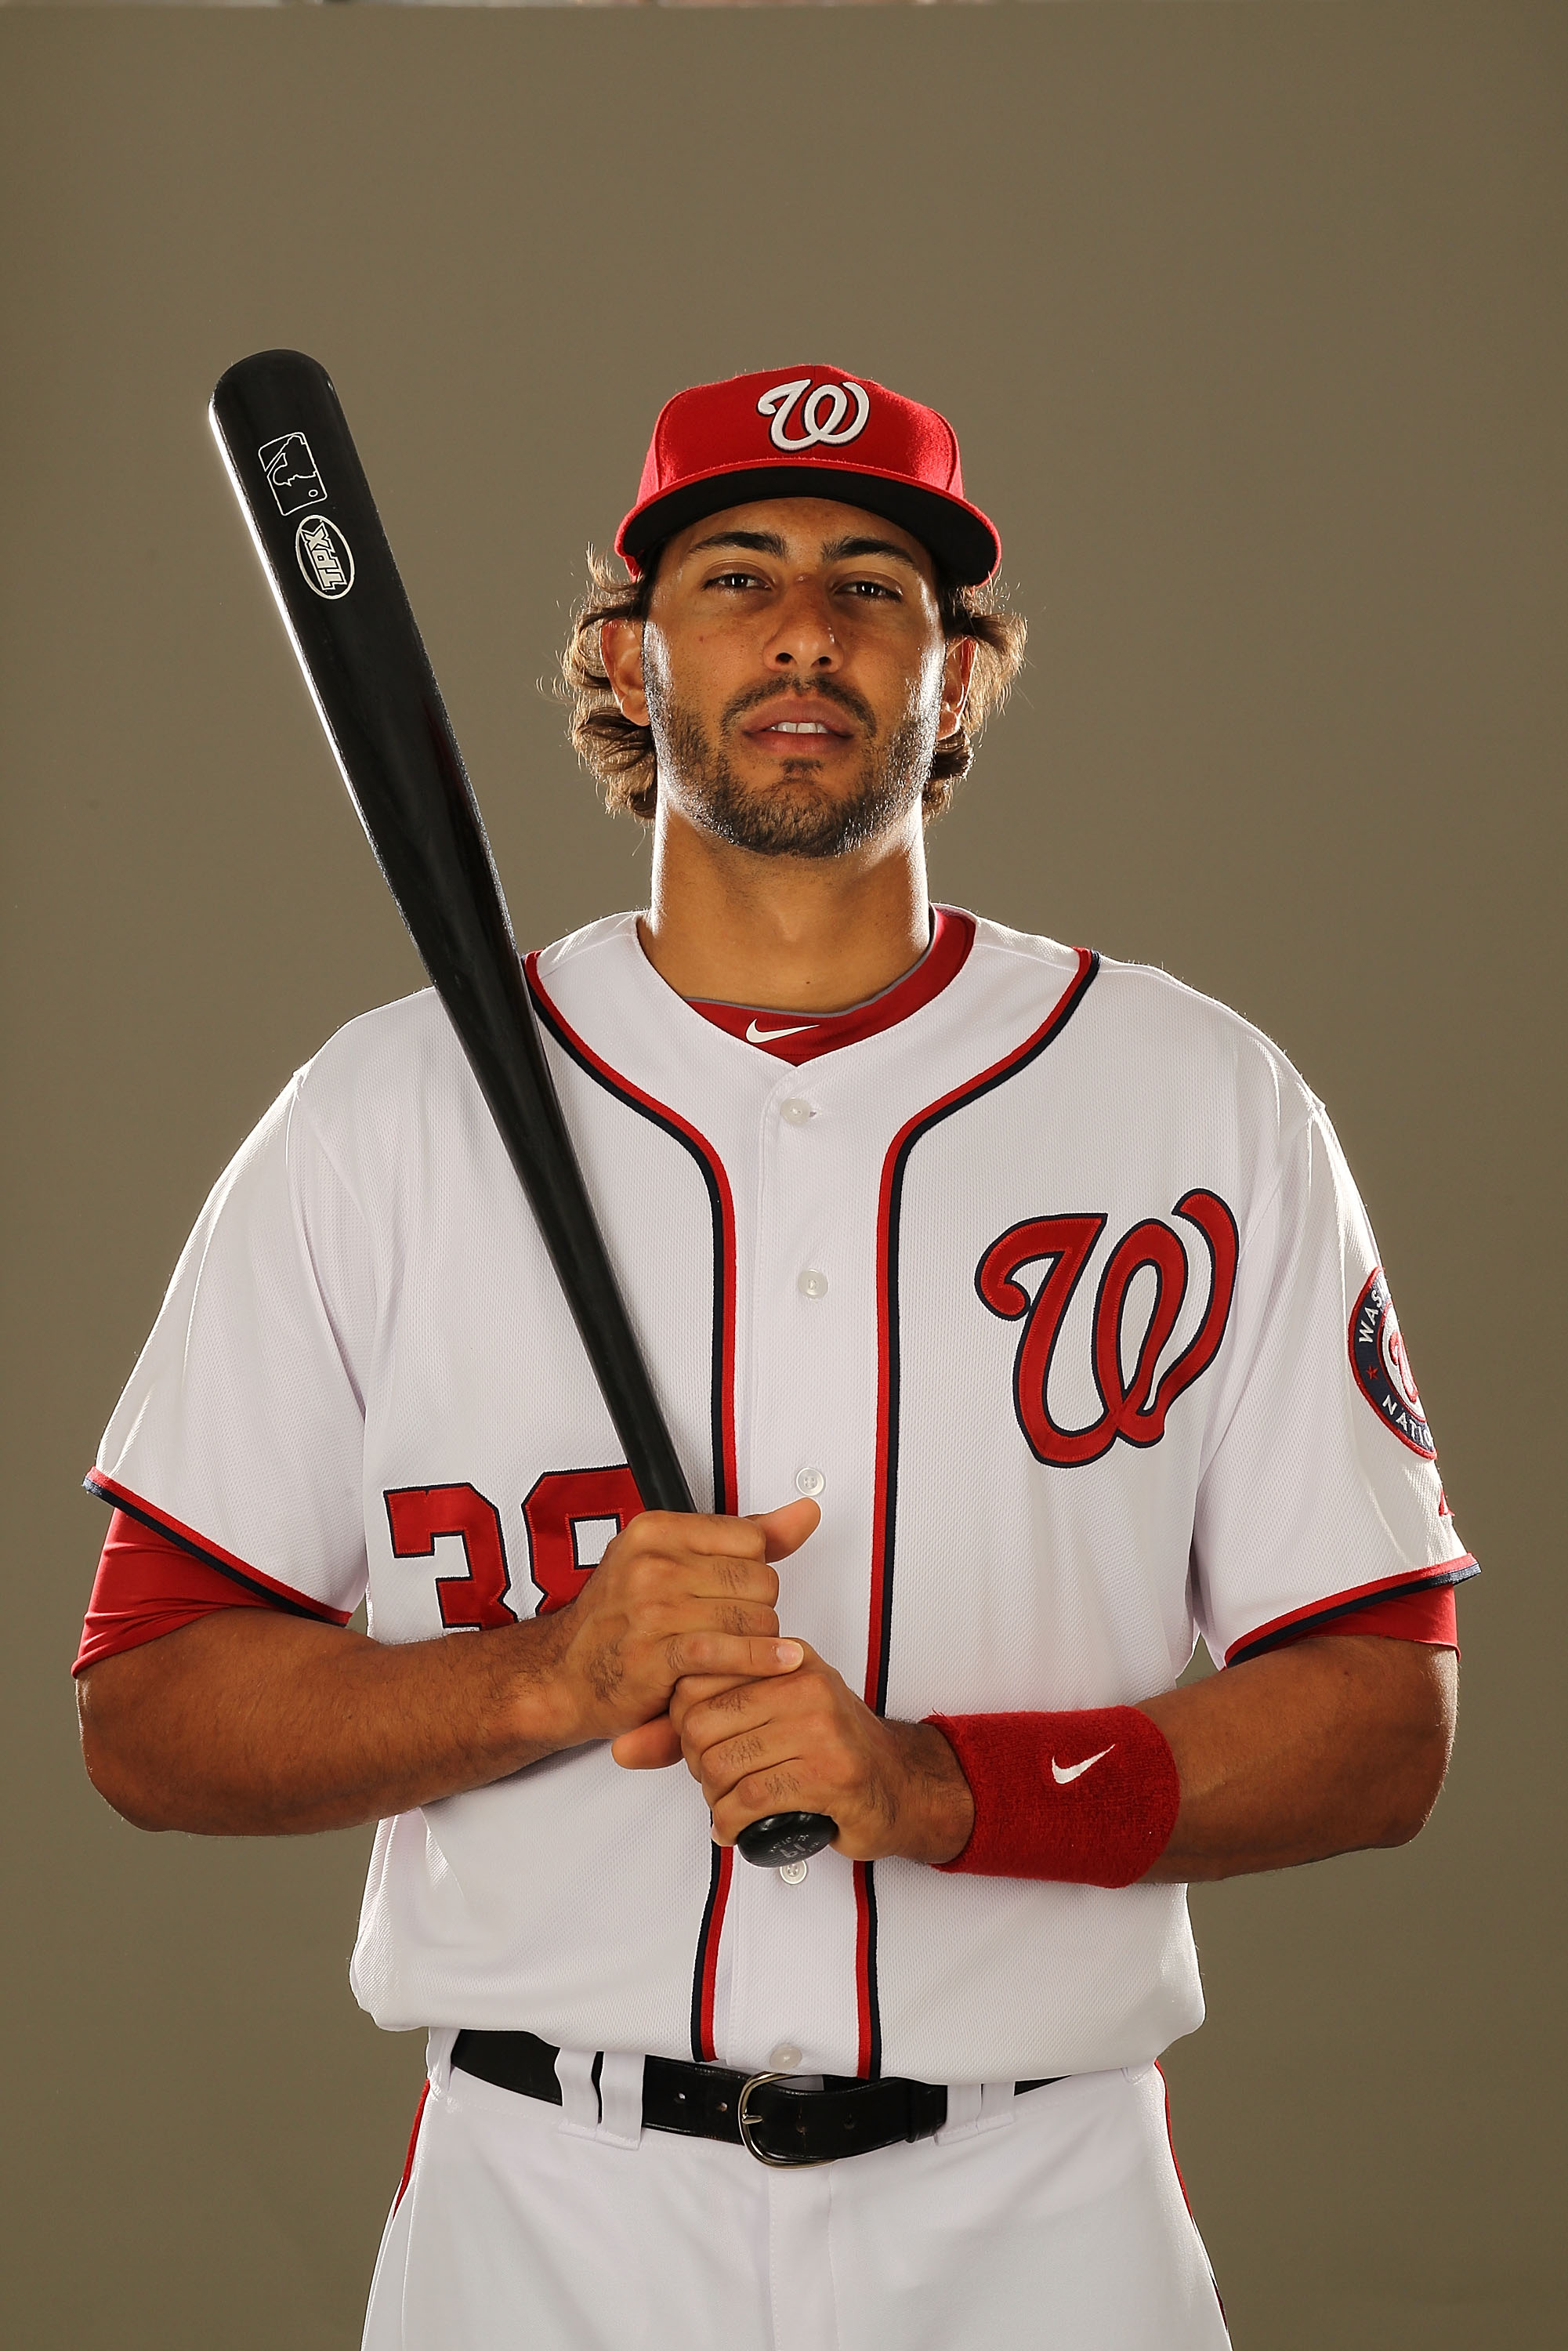 VIERA, FL - FEBRUARY 25:  Michael Morse #38 of the Washington Nationals poses for a portrait during Spring Training Photo Day at Space Coast Stadium on February 25, 2011 in Viera, Florida.  (Photo by Al Bello/Getty Images)